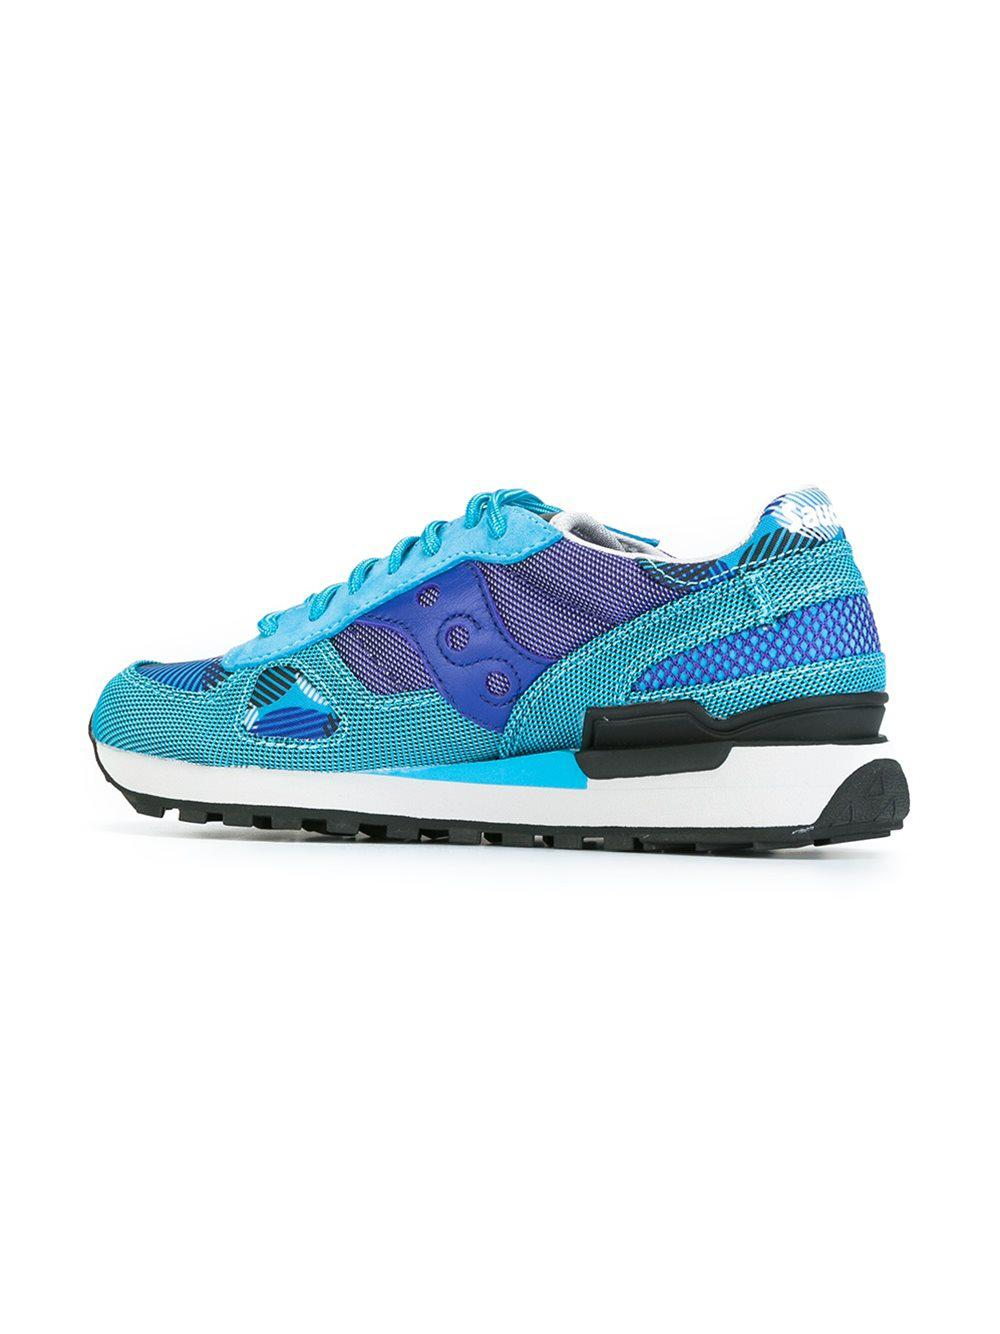 Saucony Leather Patterned Lace-up Sneakers in Blue